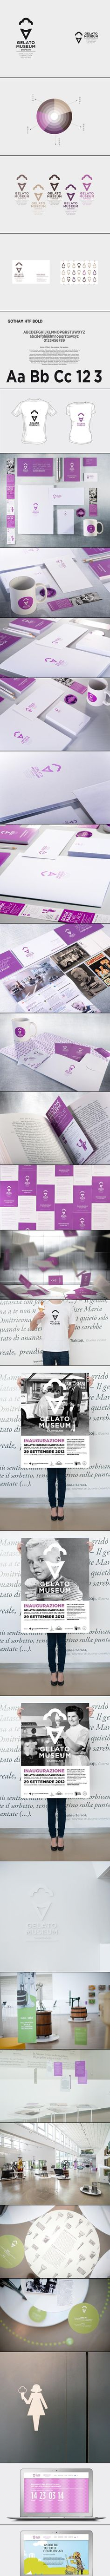 Gelato Museum #identity #packaging #branding #marketing PD